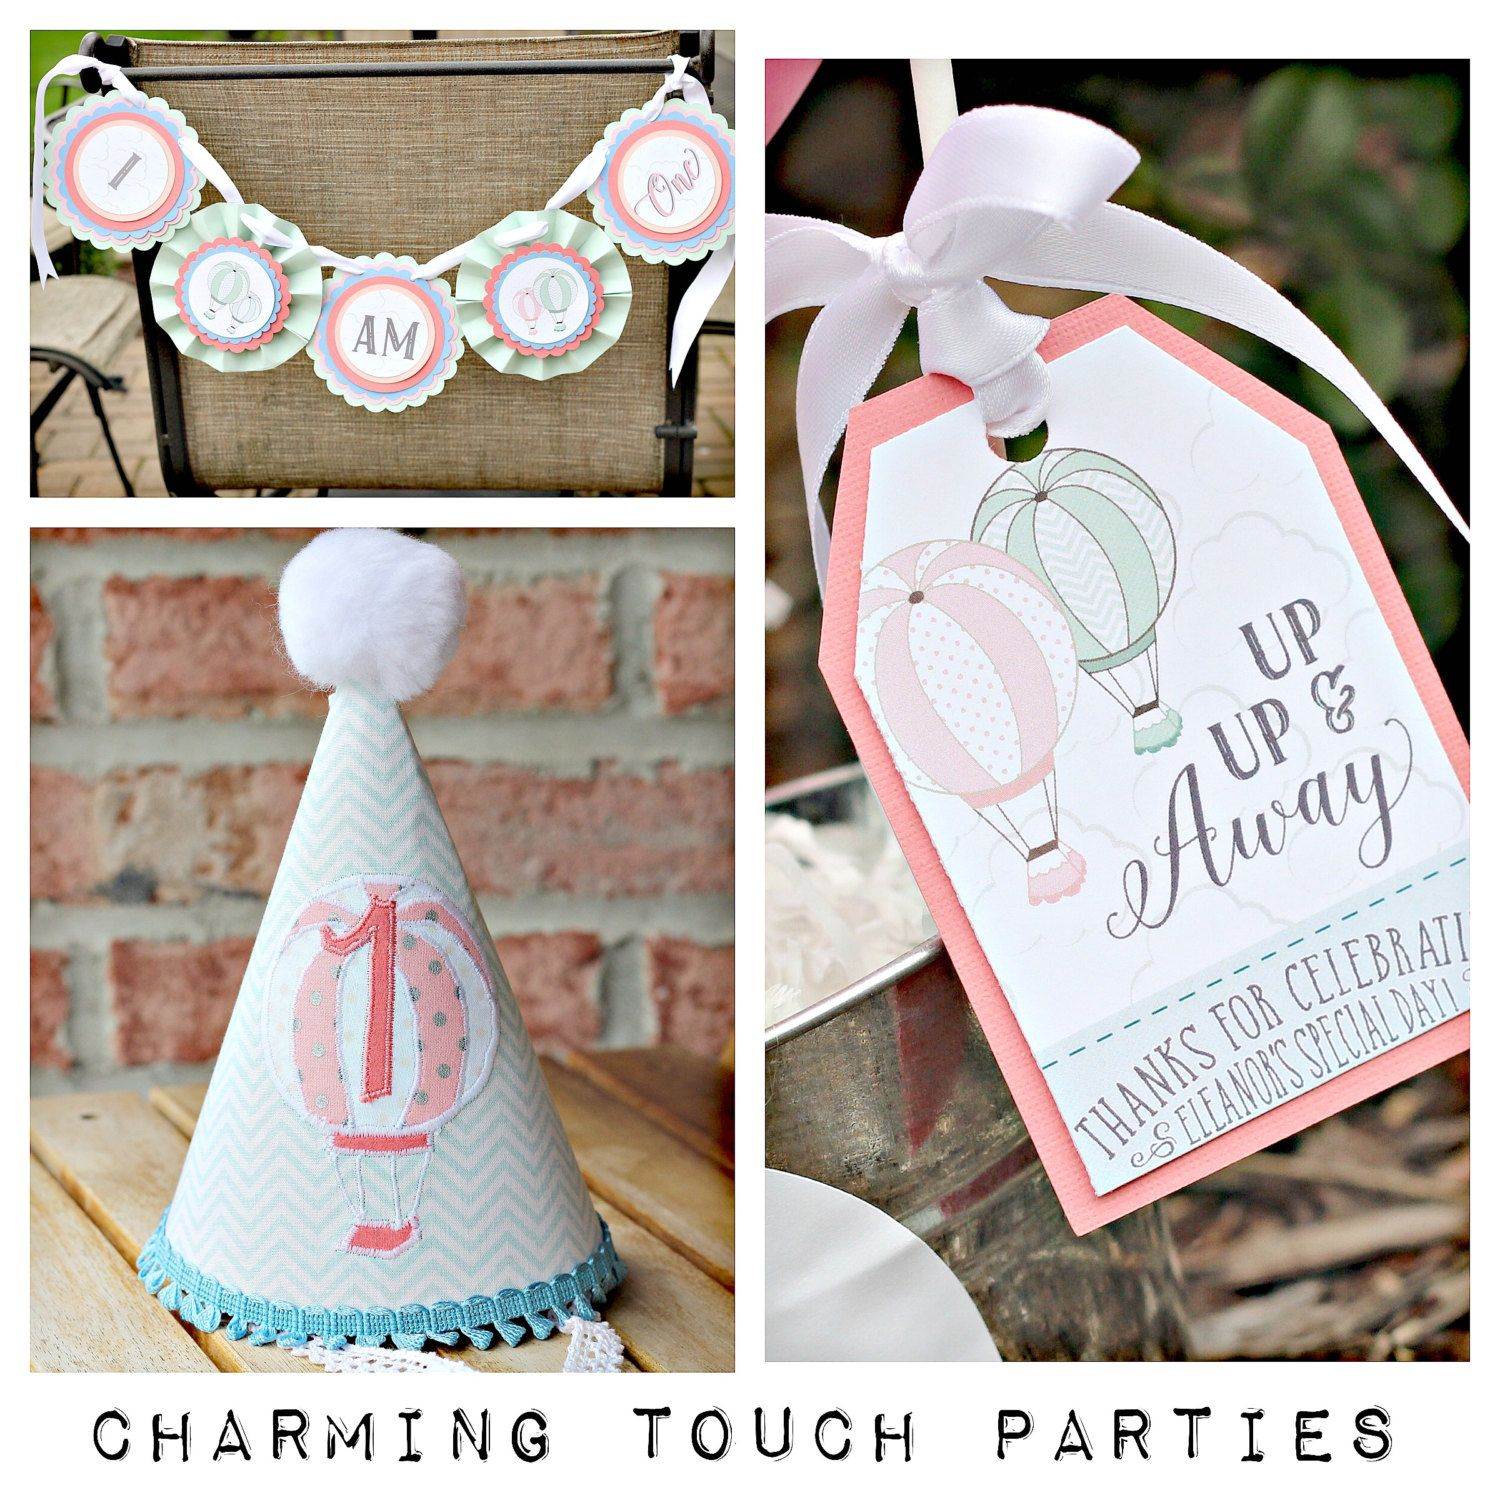 Up Up and Away Hot Air Balloon Party-In-A-Box by Charming Touch Parties. Pink, blue and coral and mint. Boutique 3 piece party pack. by CharmingTouchParties on Etsy